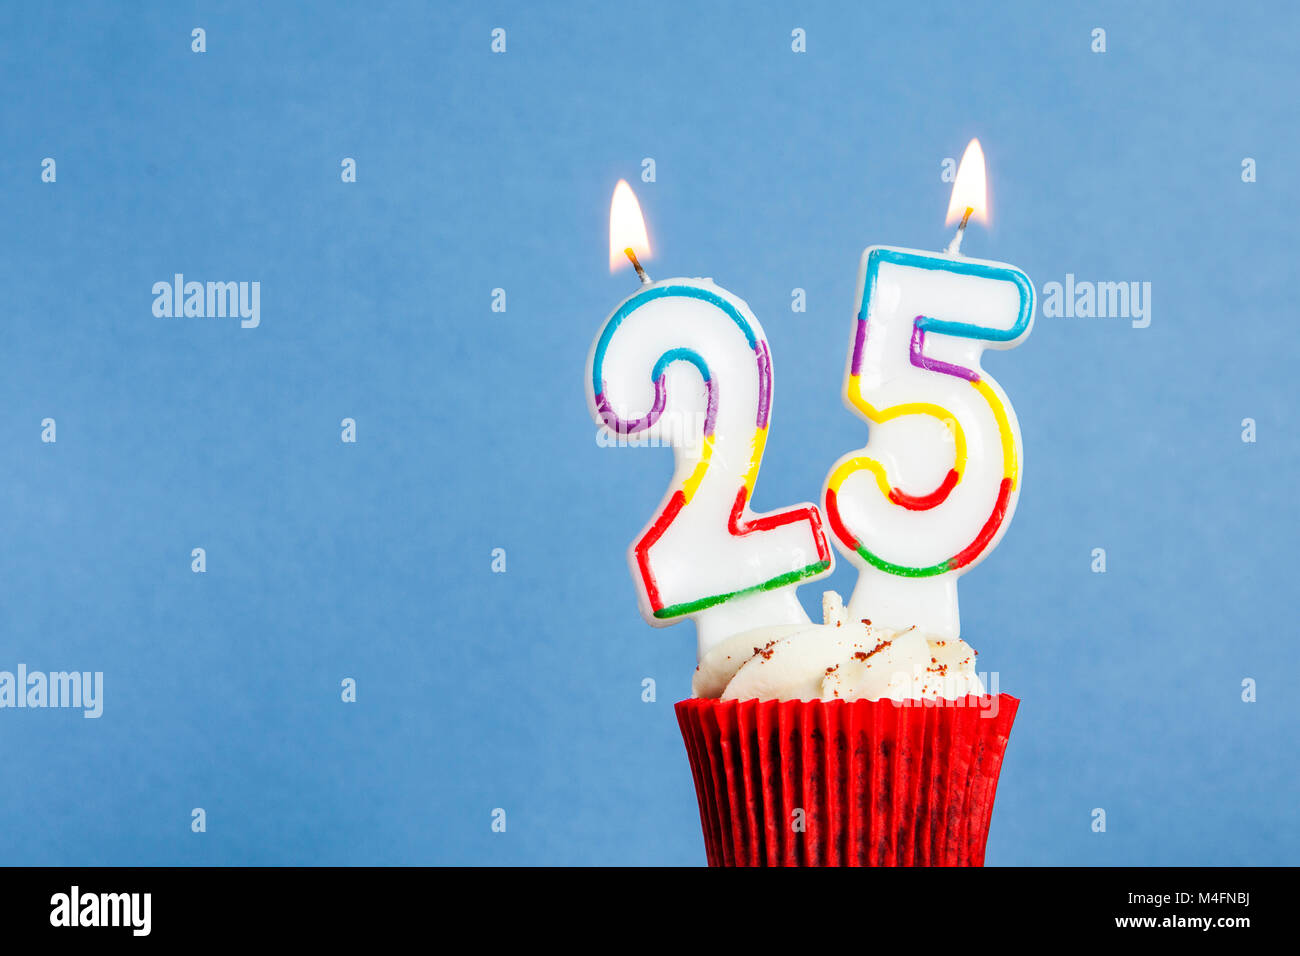 the number 25 birthday